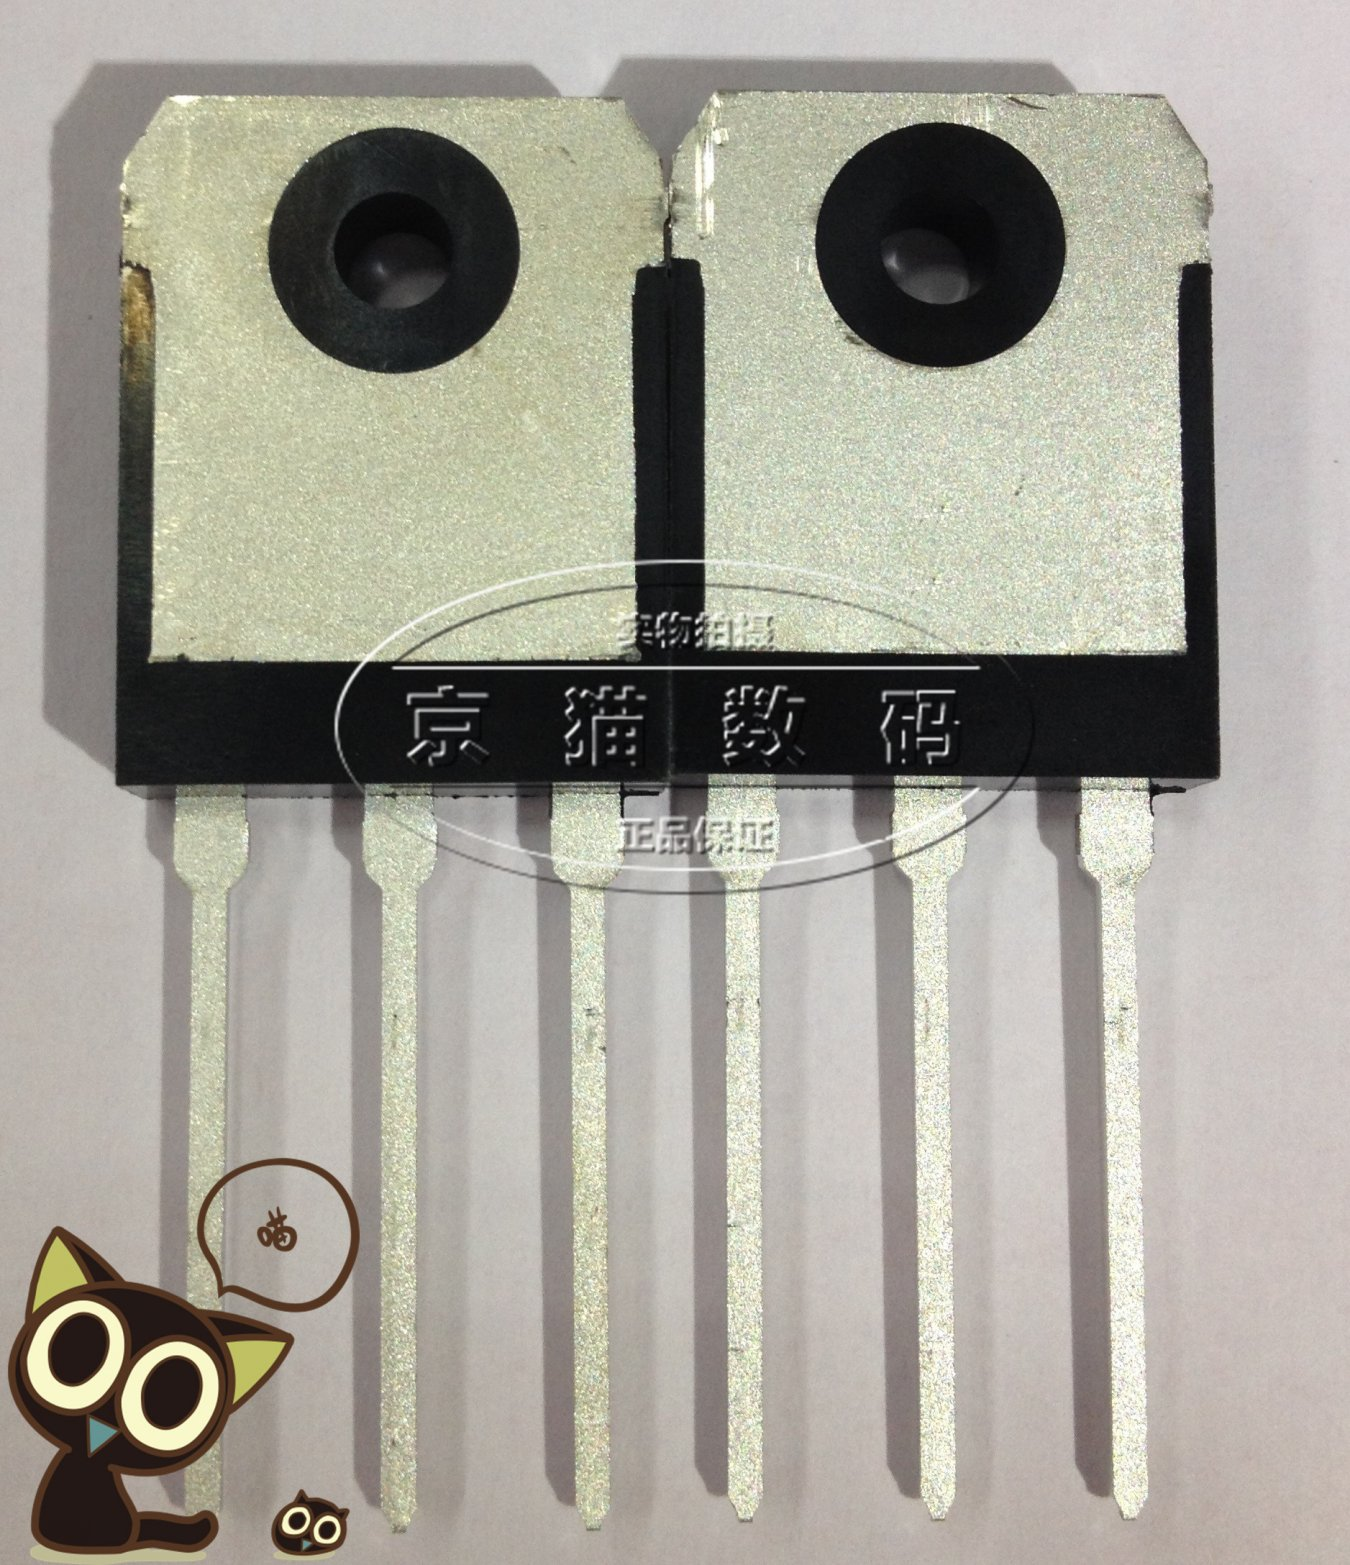 Usd 509 2sk3878 K3878 9a 900v New Imported Electric Welding Pin Igbt Circuit Of Equipment China Arc Welders For Sale On Machine Commonly Used Fet Zoom Lightbox Moreview